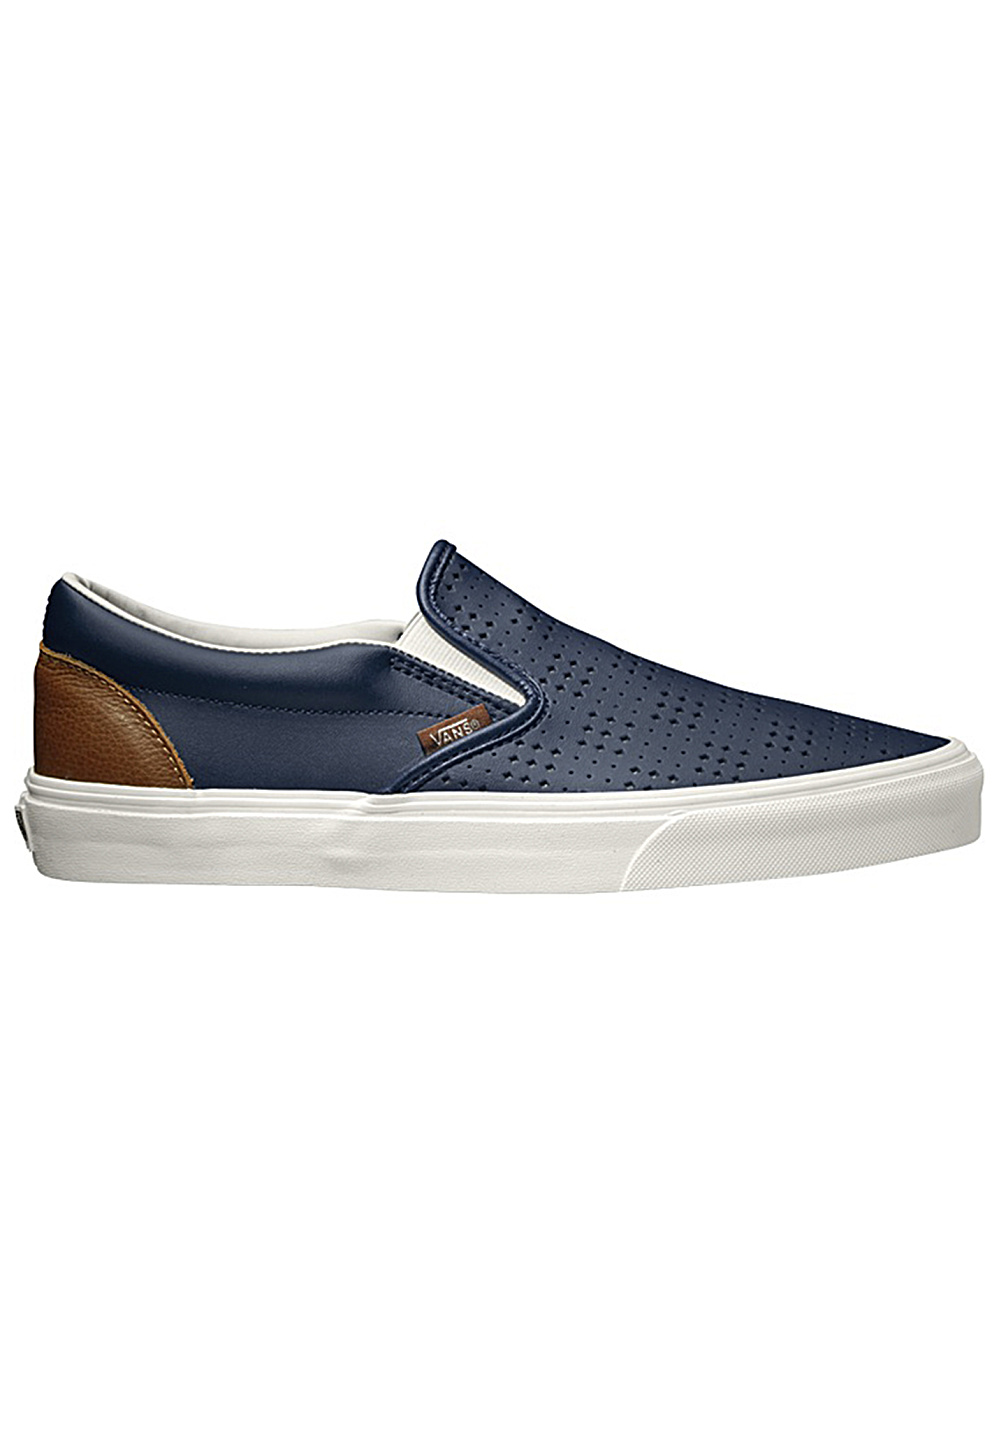 76bf3d9c15a201 ... Vans Classic - Slip-Ons - Blue. Back to Overview. -40%